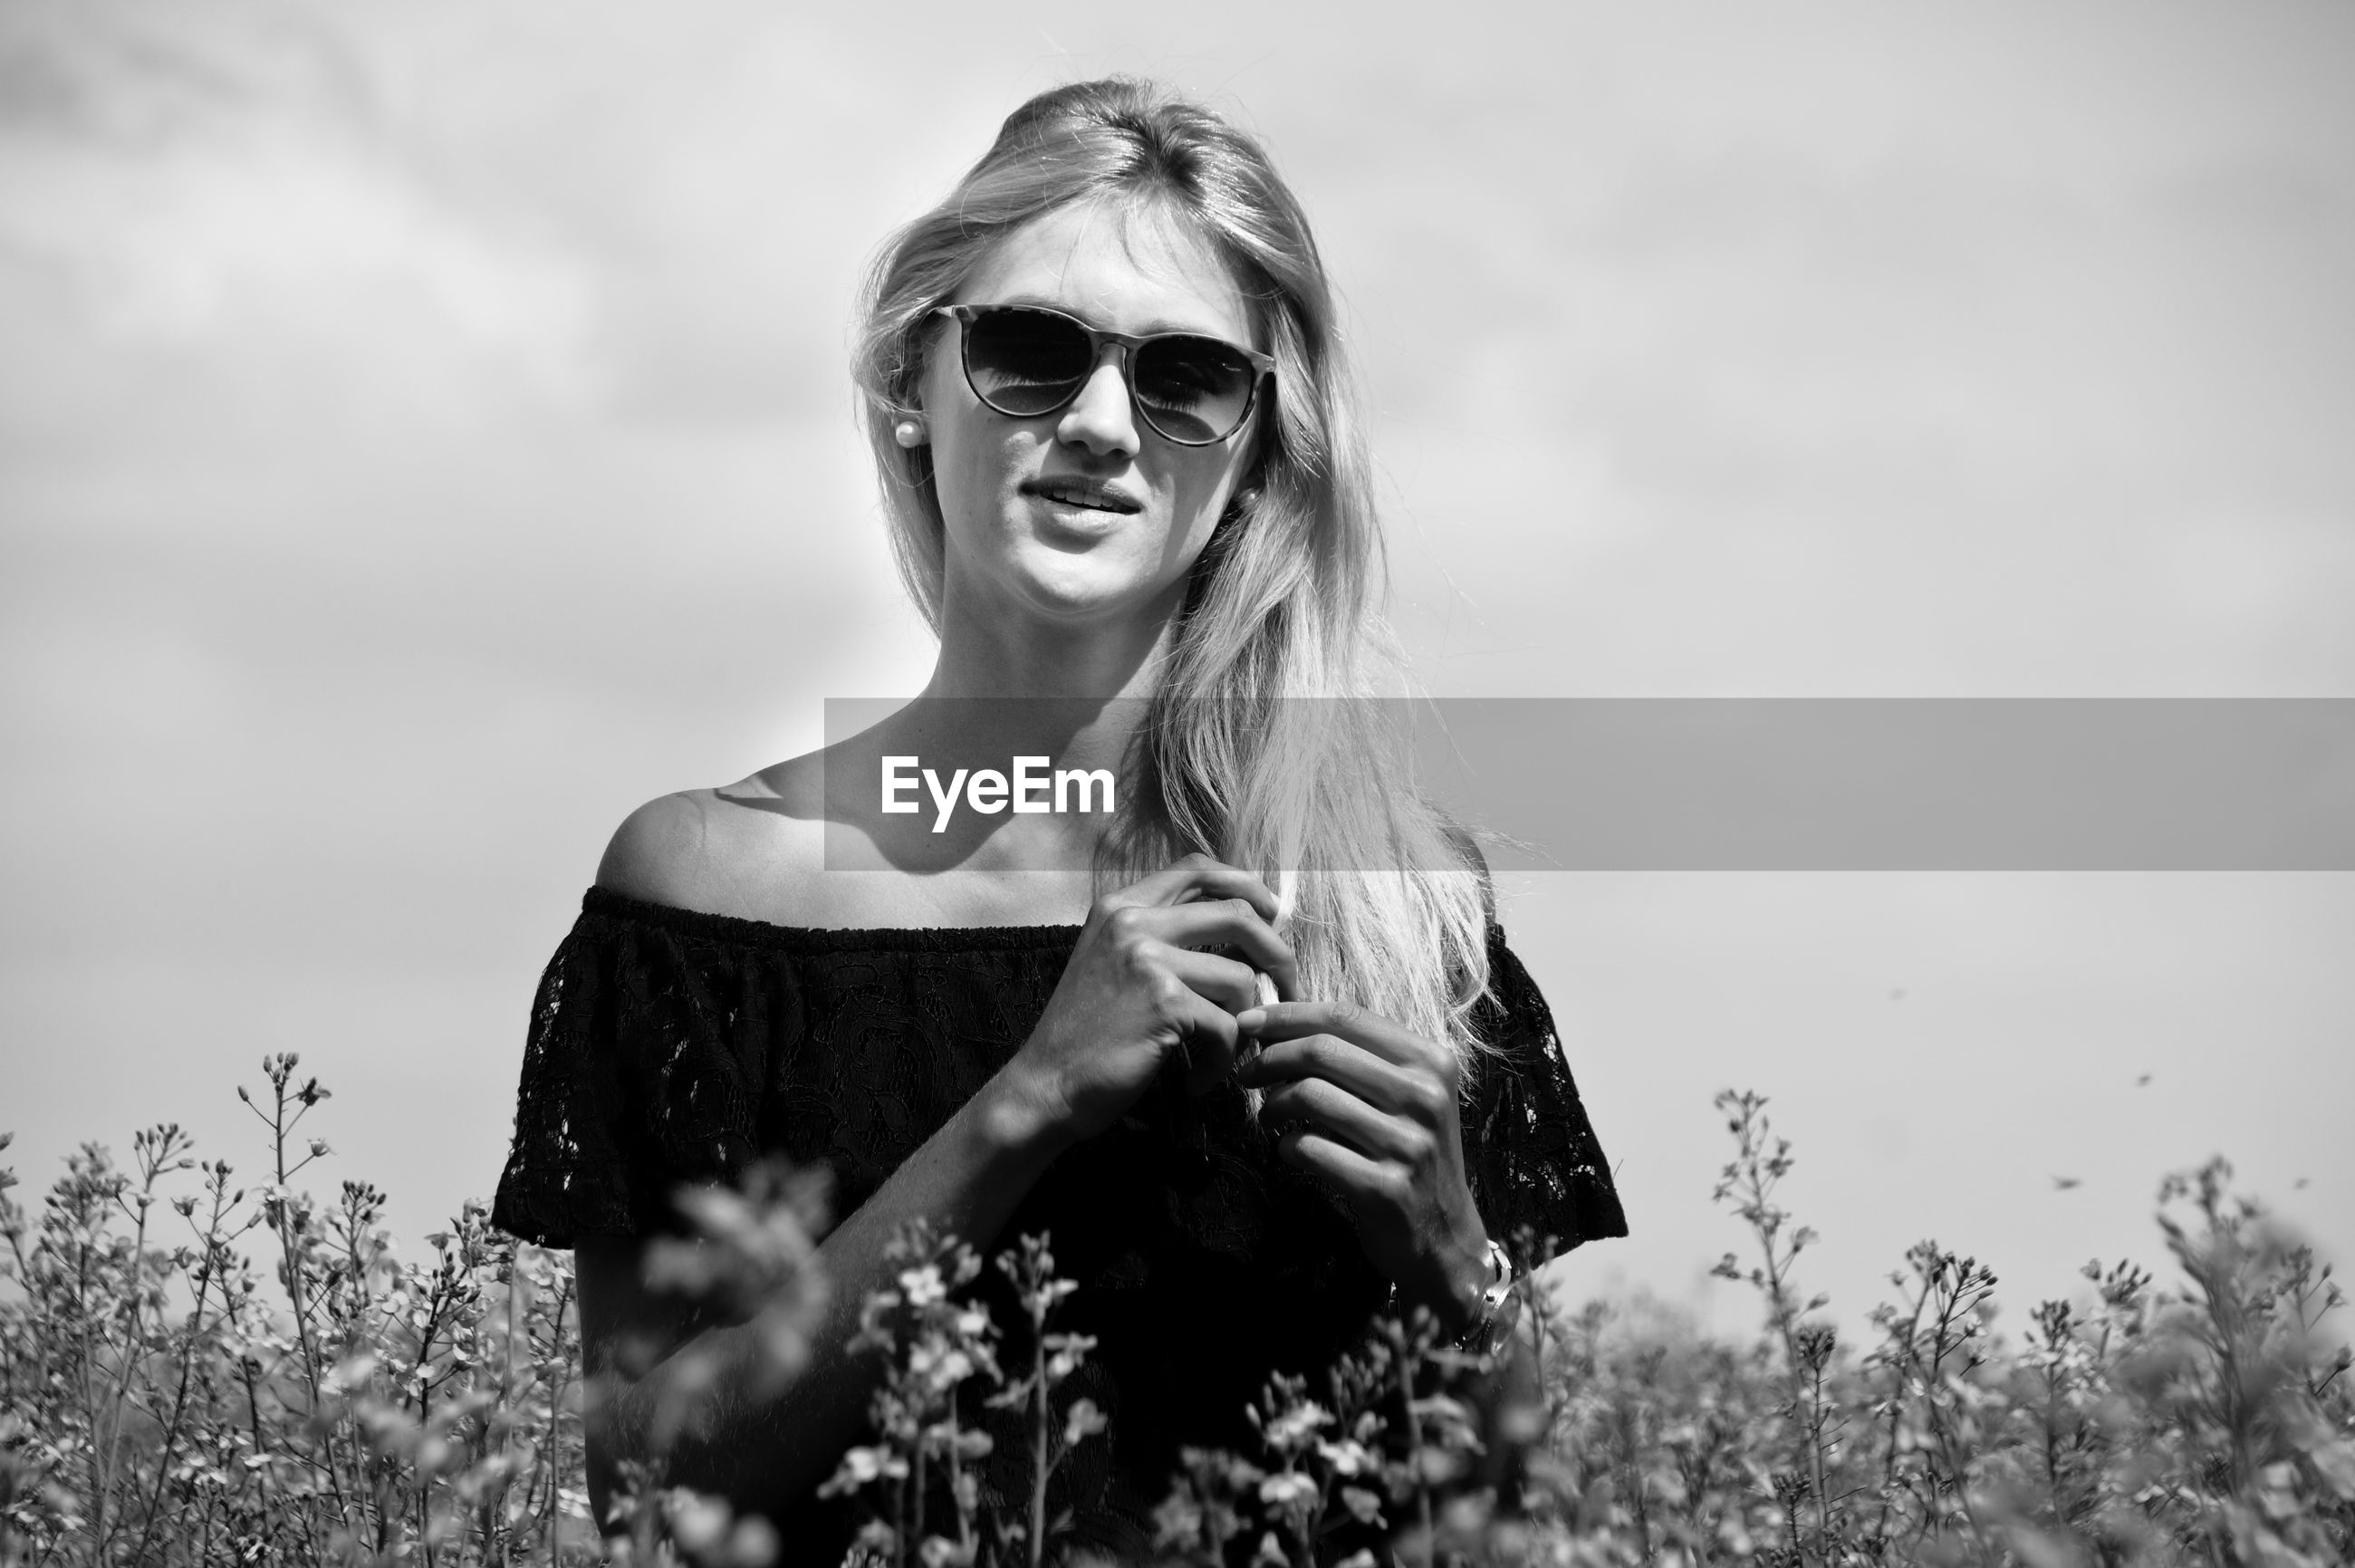 Portrait of young woman wearing sunglasses on field against sky